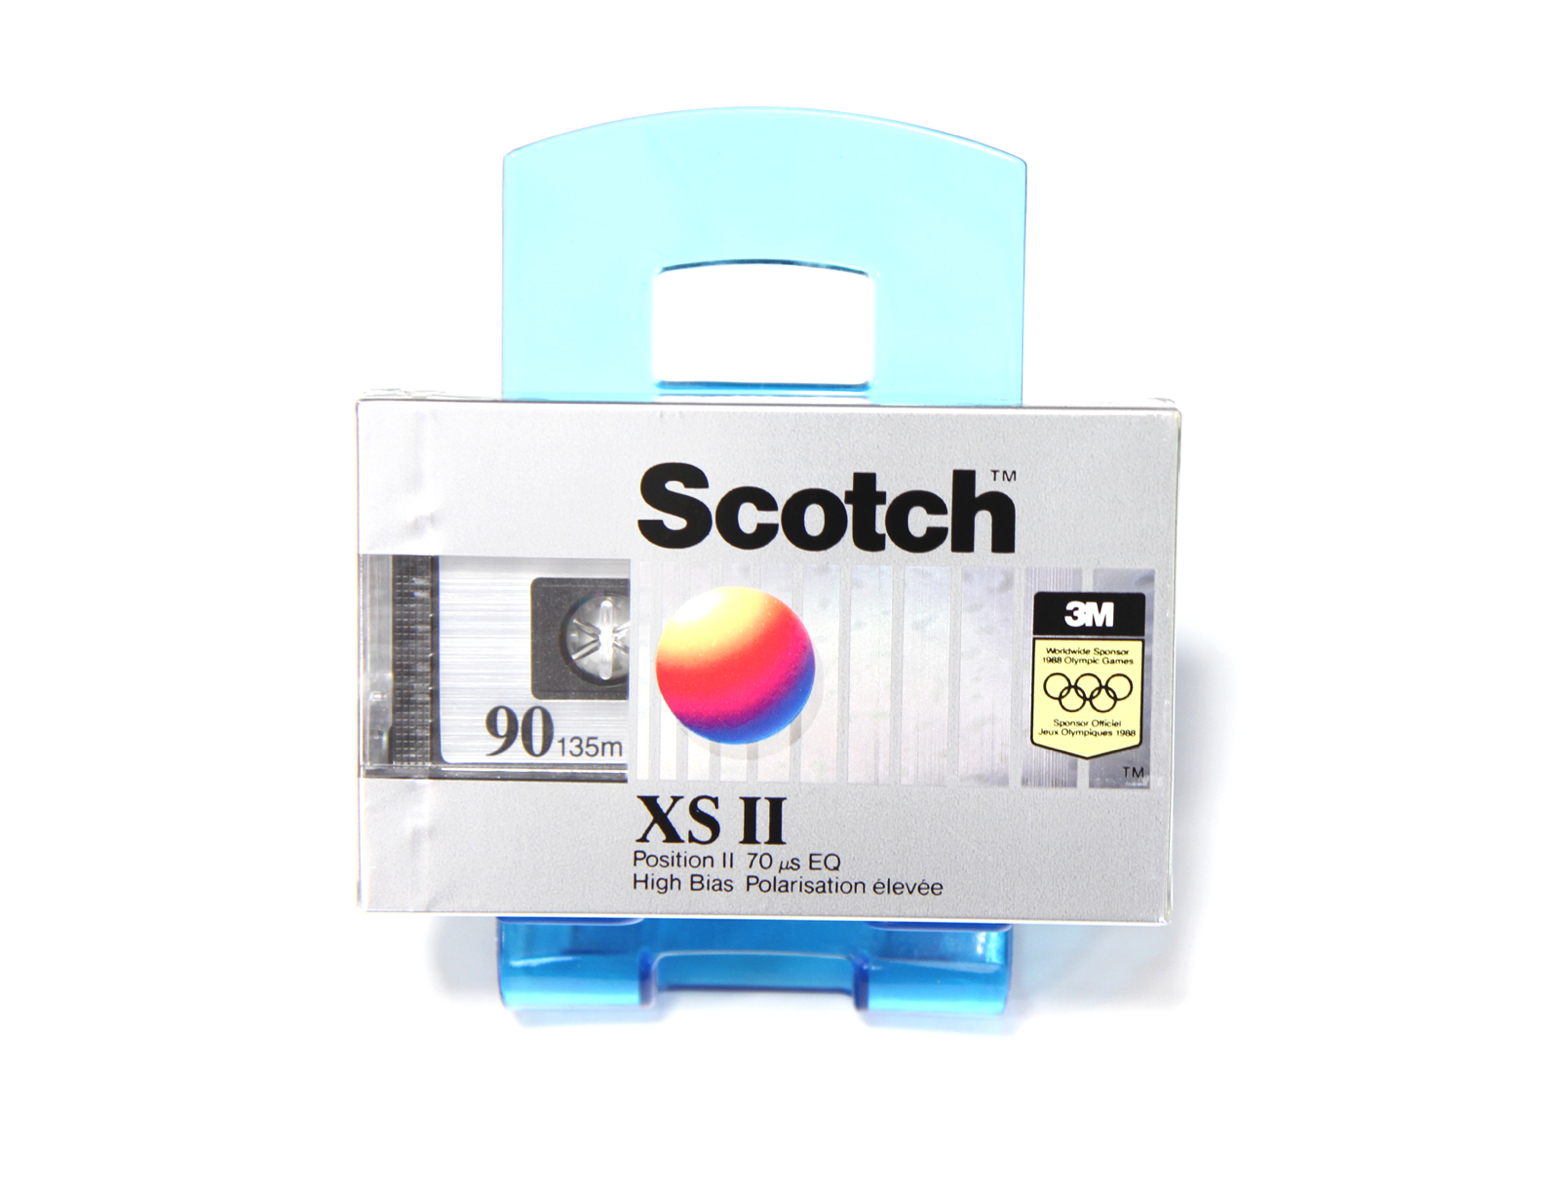 SCOTCH XSII-90 Position Chrome